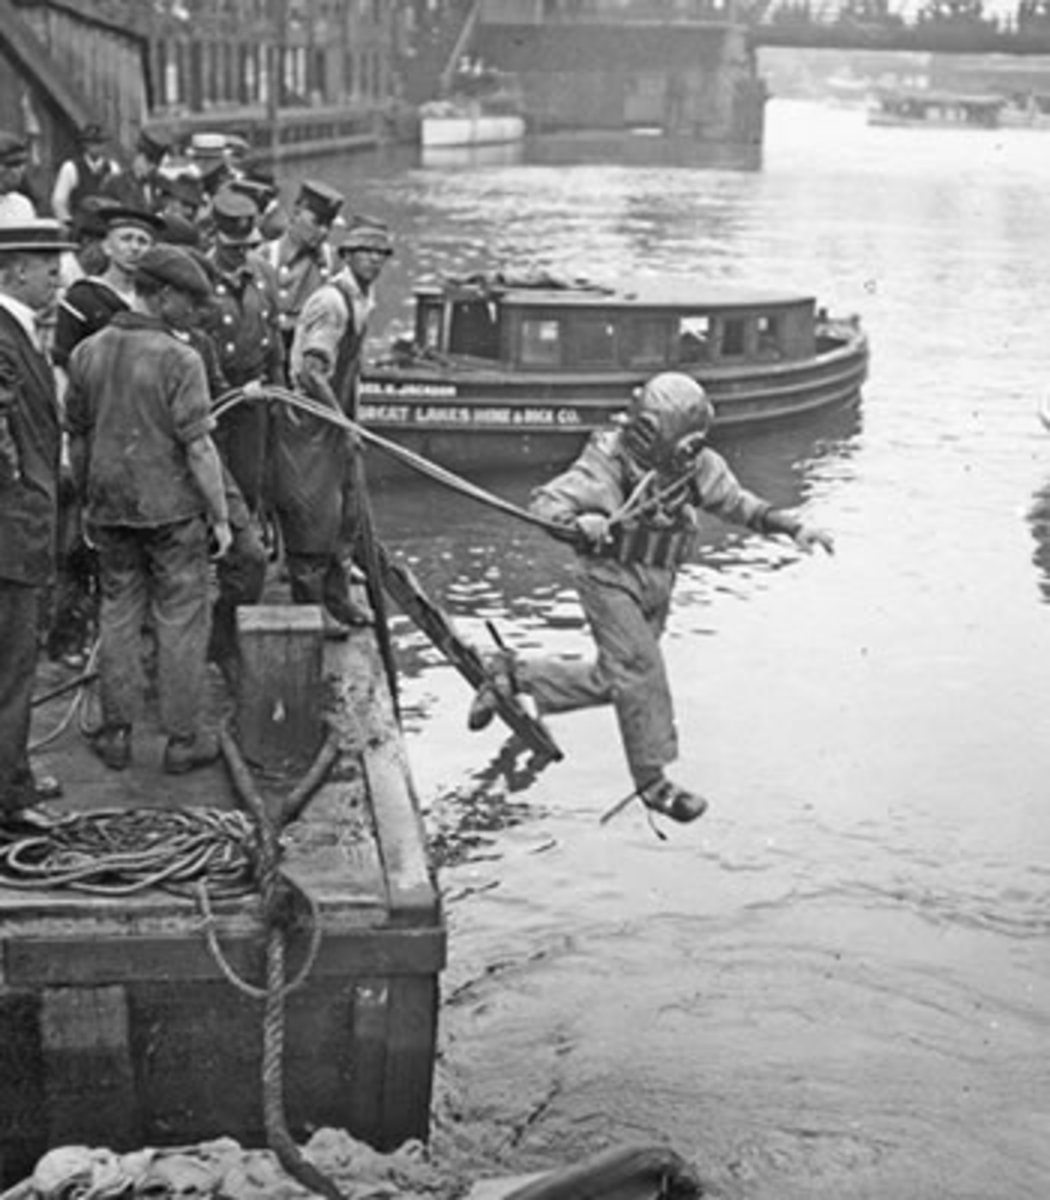 A rescue worker leaps into the Chicago River.